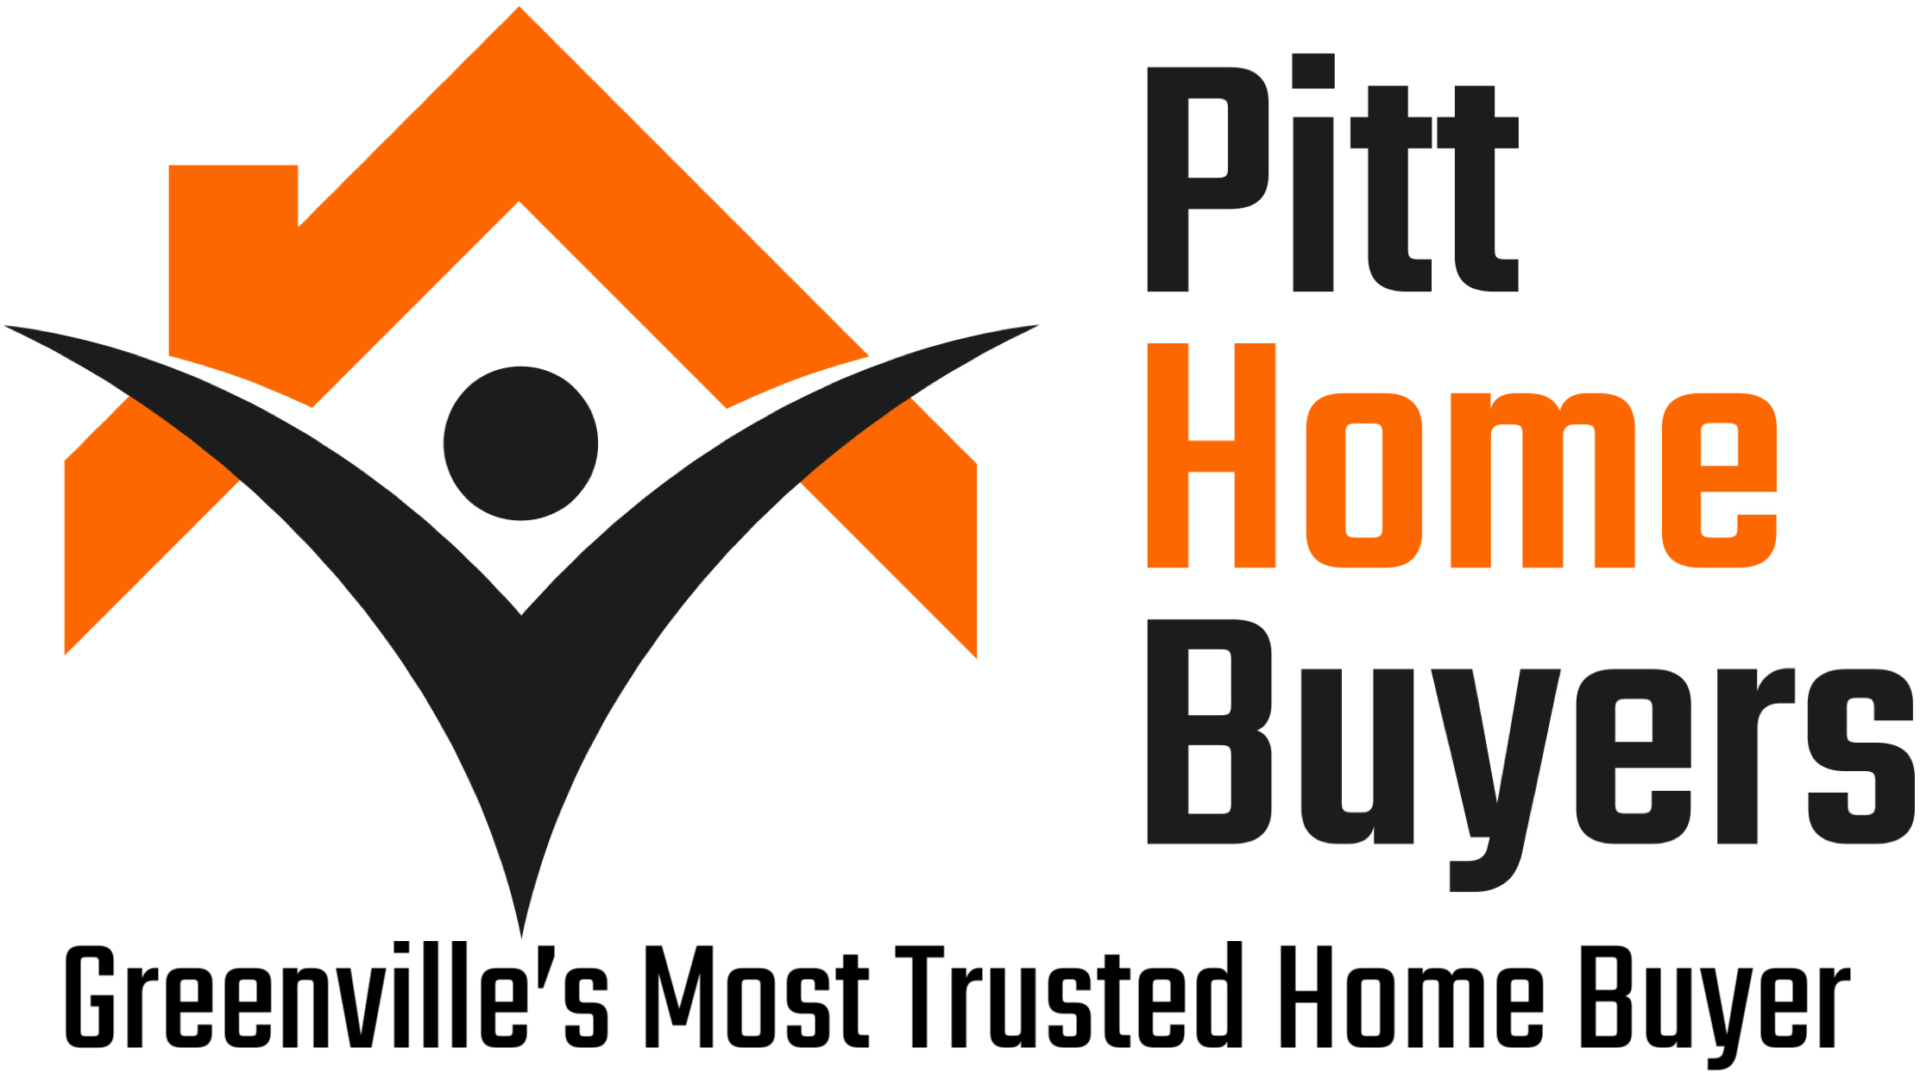 We Buy Greenville NC Houses logo